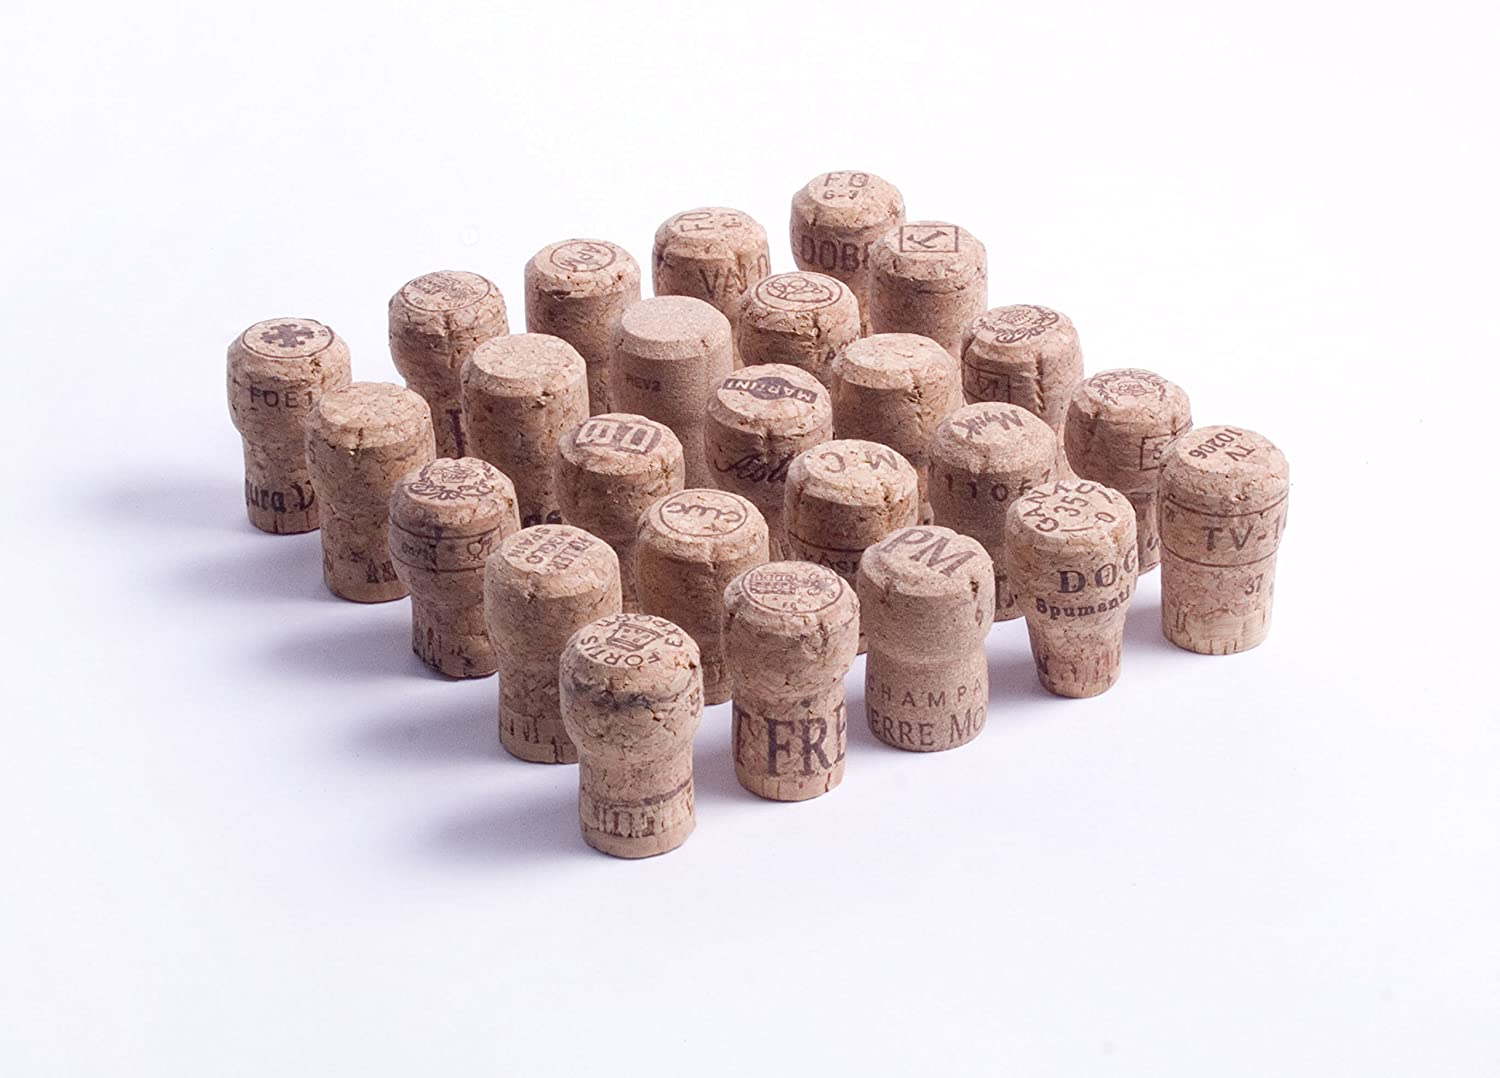 Assorted Used Real Sparkling Wine Corks for Upcycle Crafts - 25pc Jelinek Cork Group